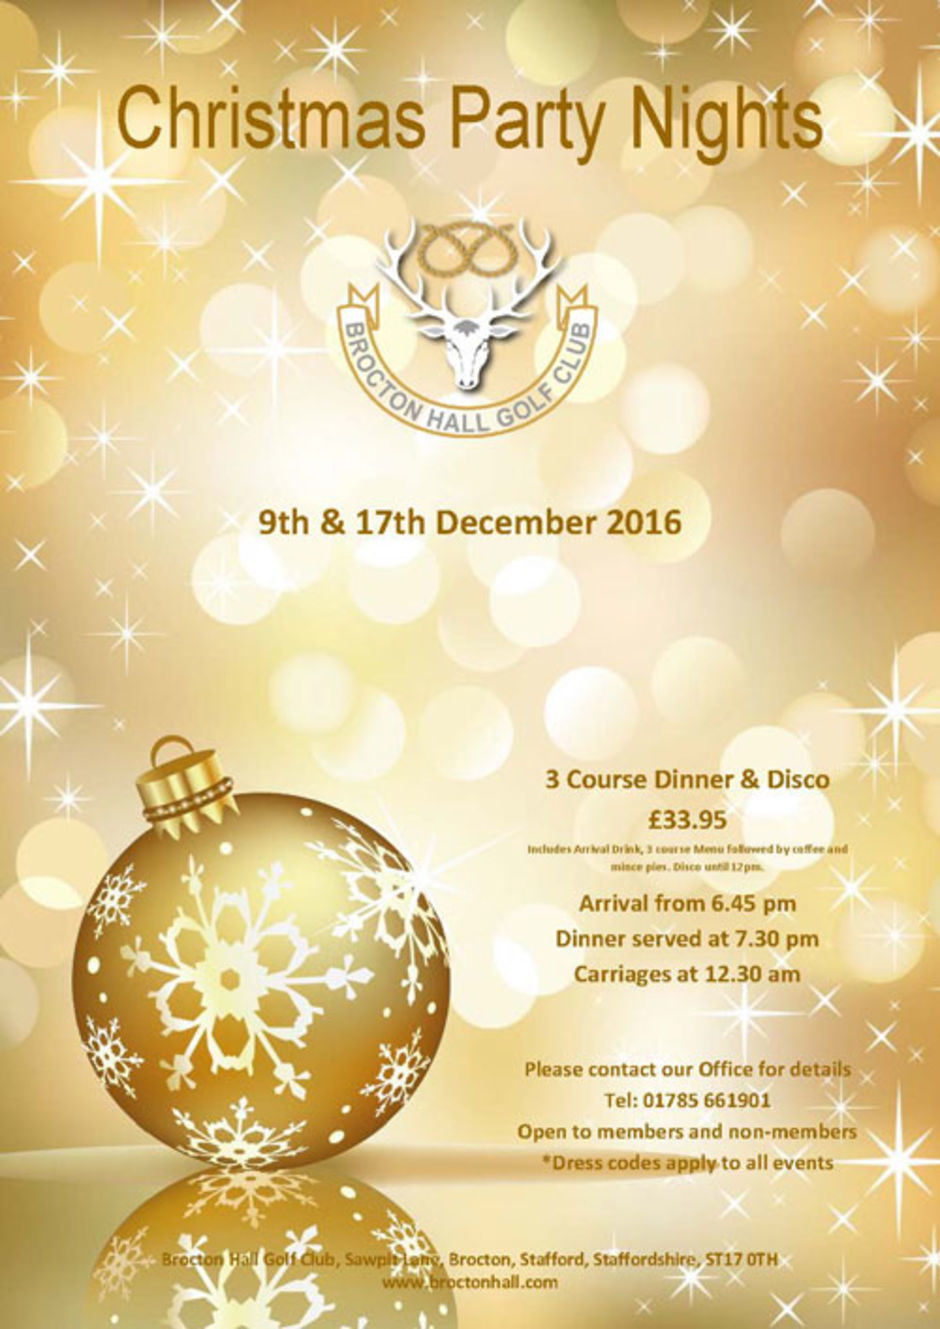 Christmas Party Nights 2016 Poster